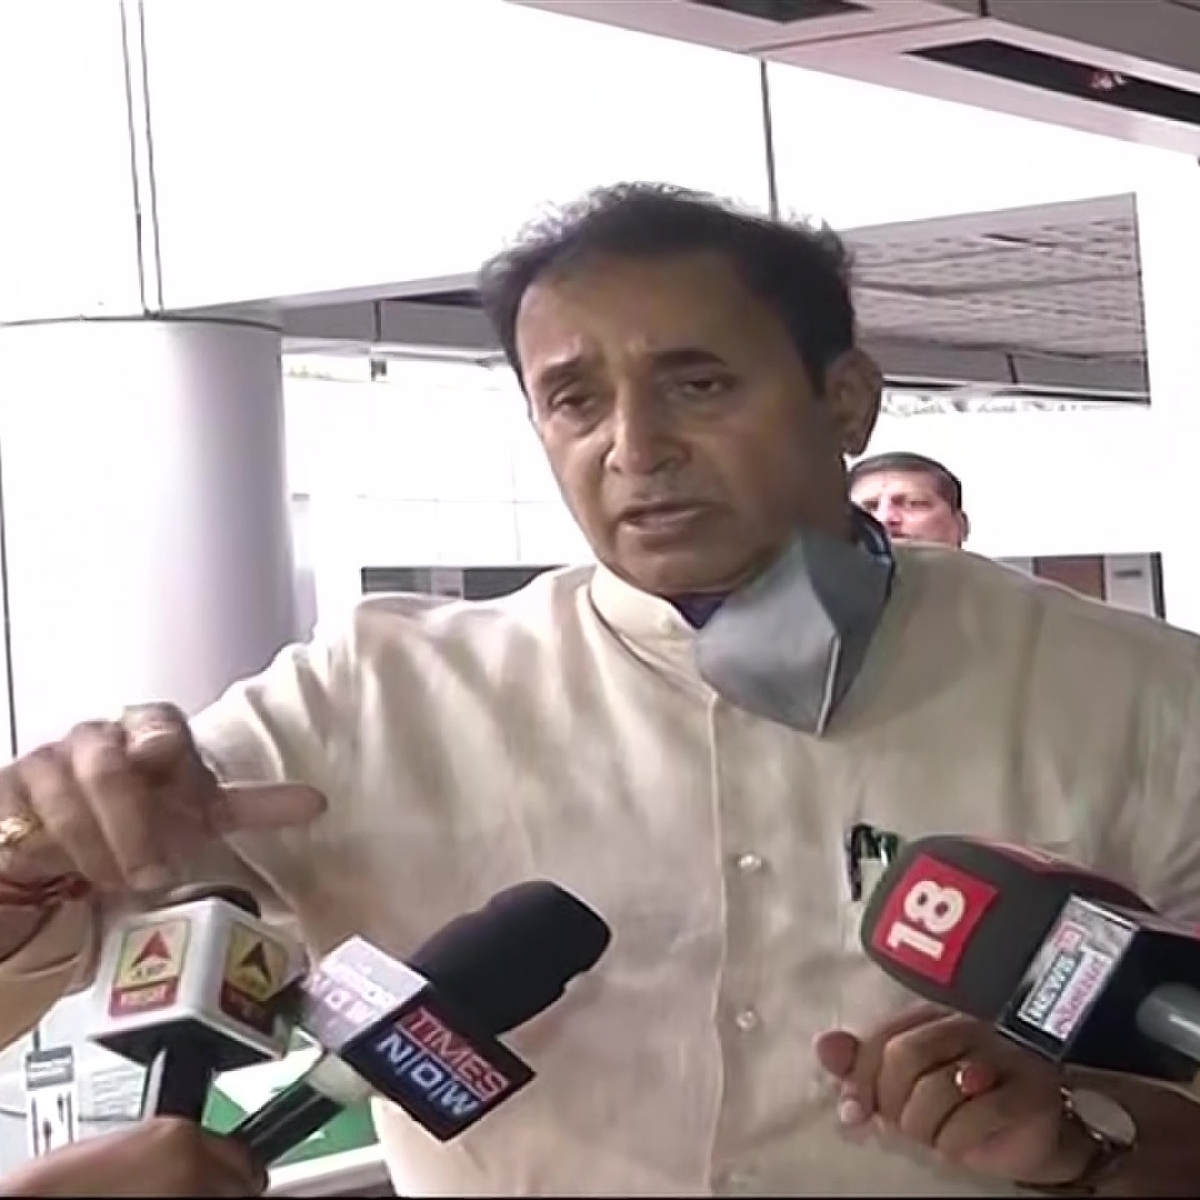 Mumbai: State home minister seeks release of around 11,000 undertrials